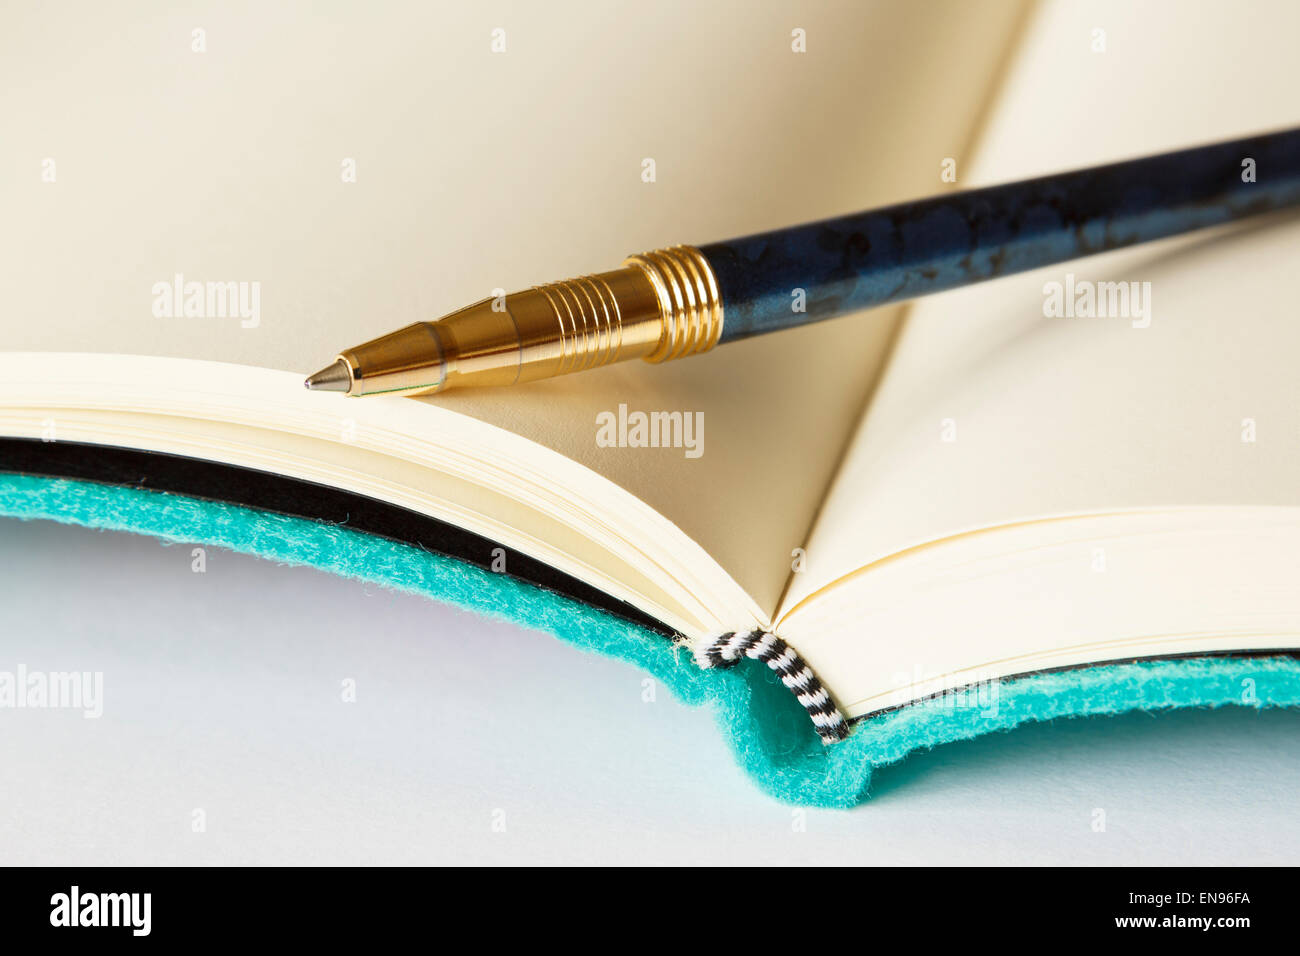 Open blank notebook with a pen on the page on a plain surface white background. - Stock Image